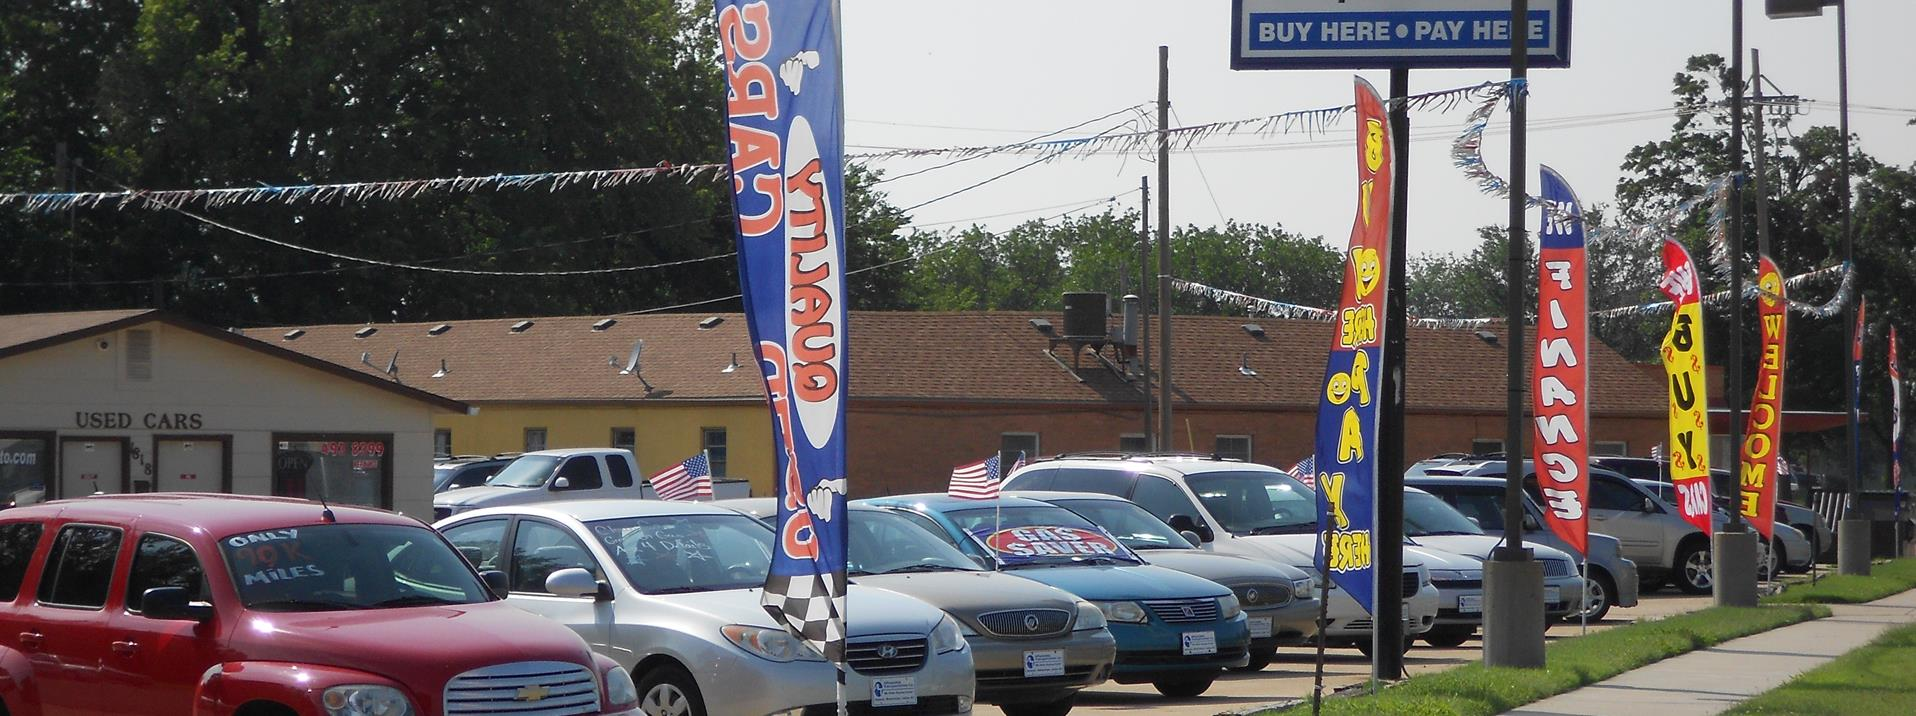 Car Dealerships Salina Ks >> Used Cars Salina Ks Used Cars Trucks Ks Affordable